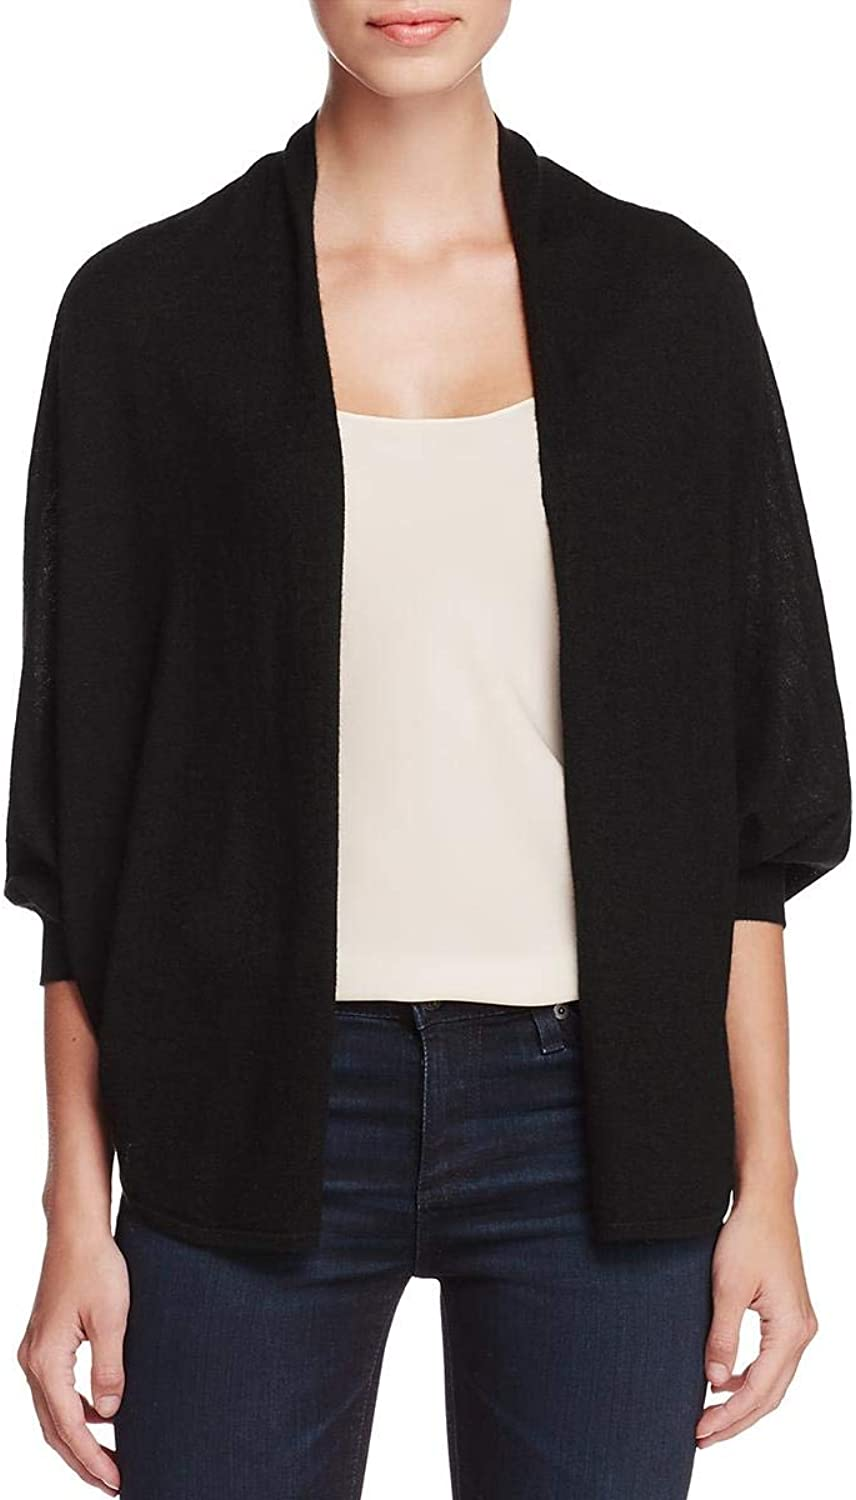 Private Label Womens Cocoon Cashmere Dolman Sleeves Cardigan Sweater